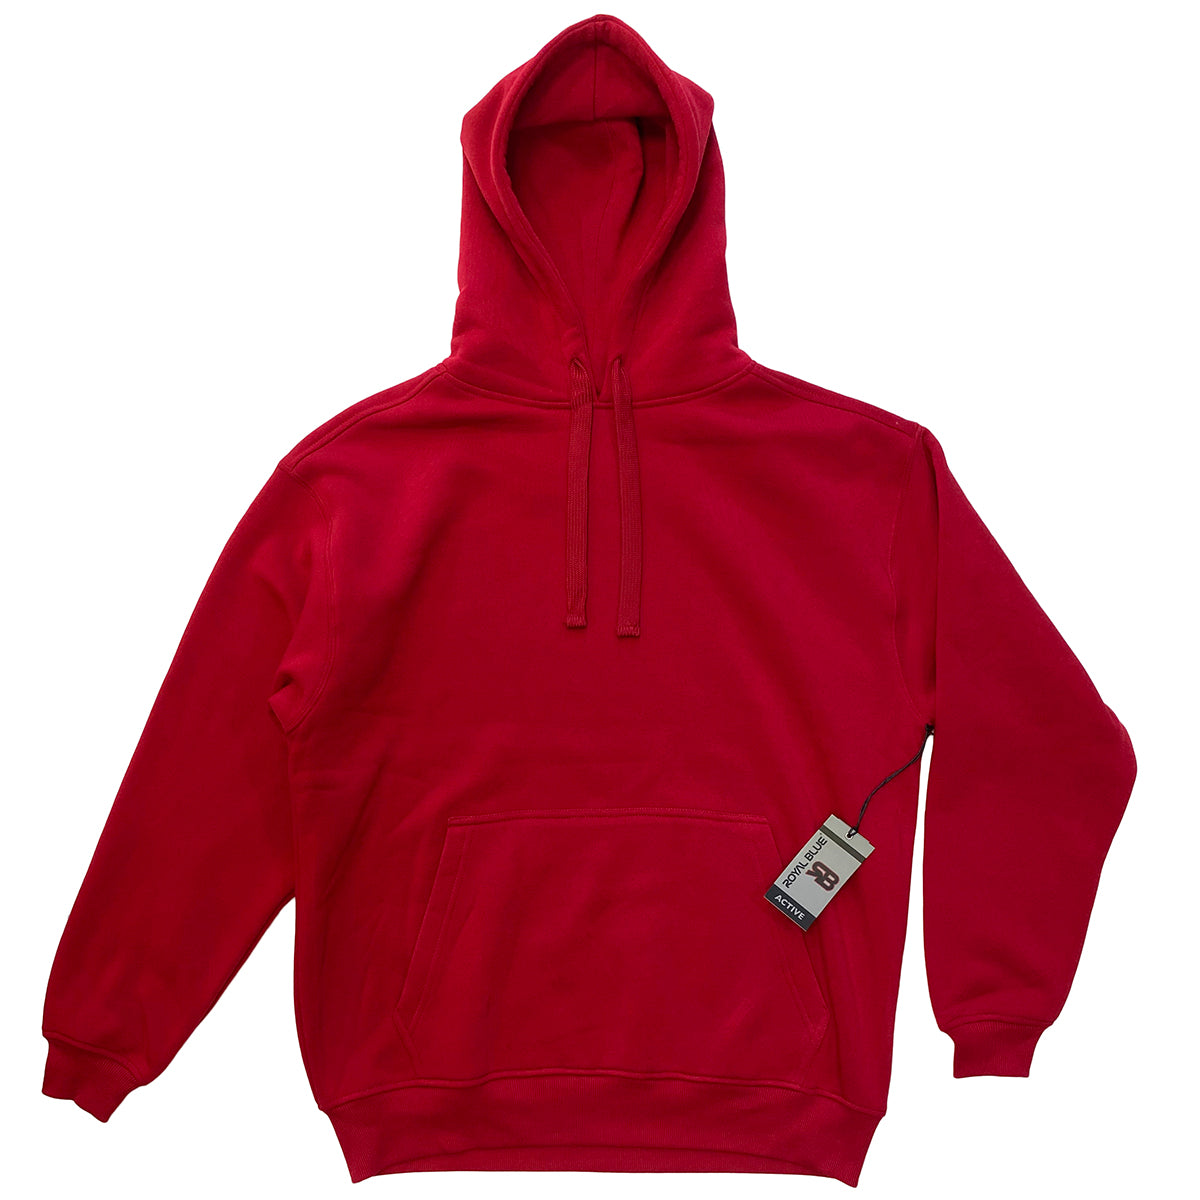 Fleece Hoodie (Available in Multiple Colors)